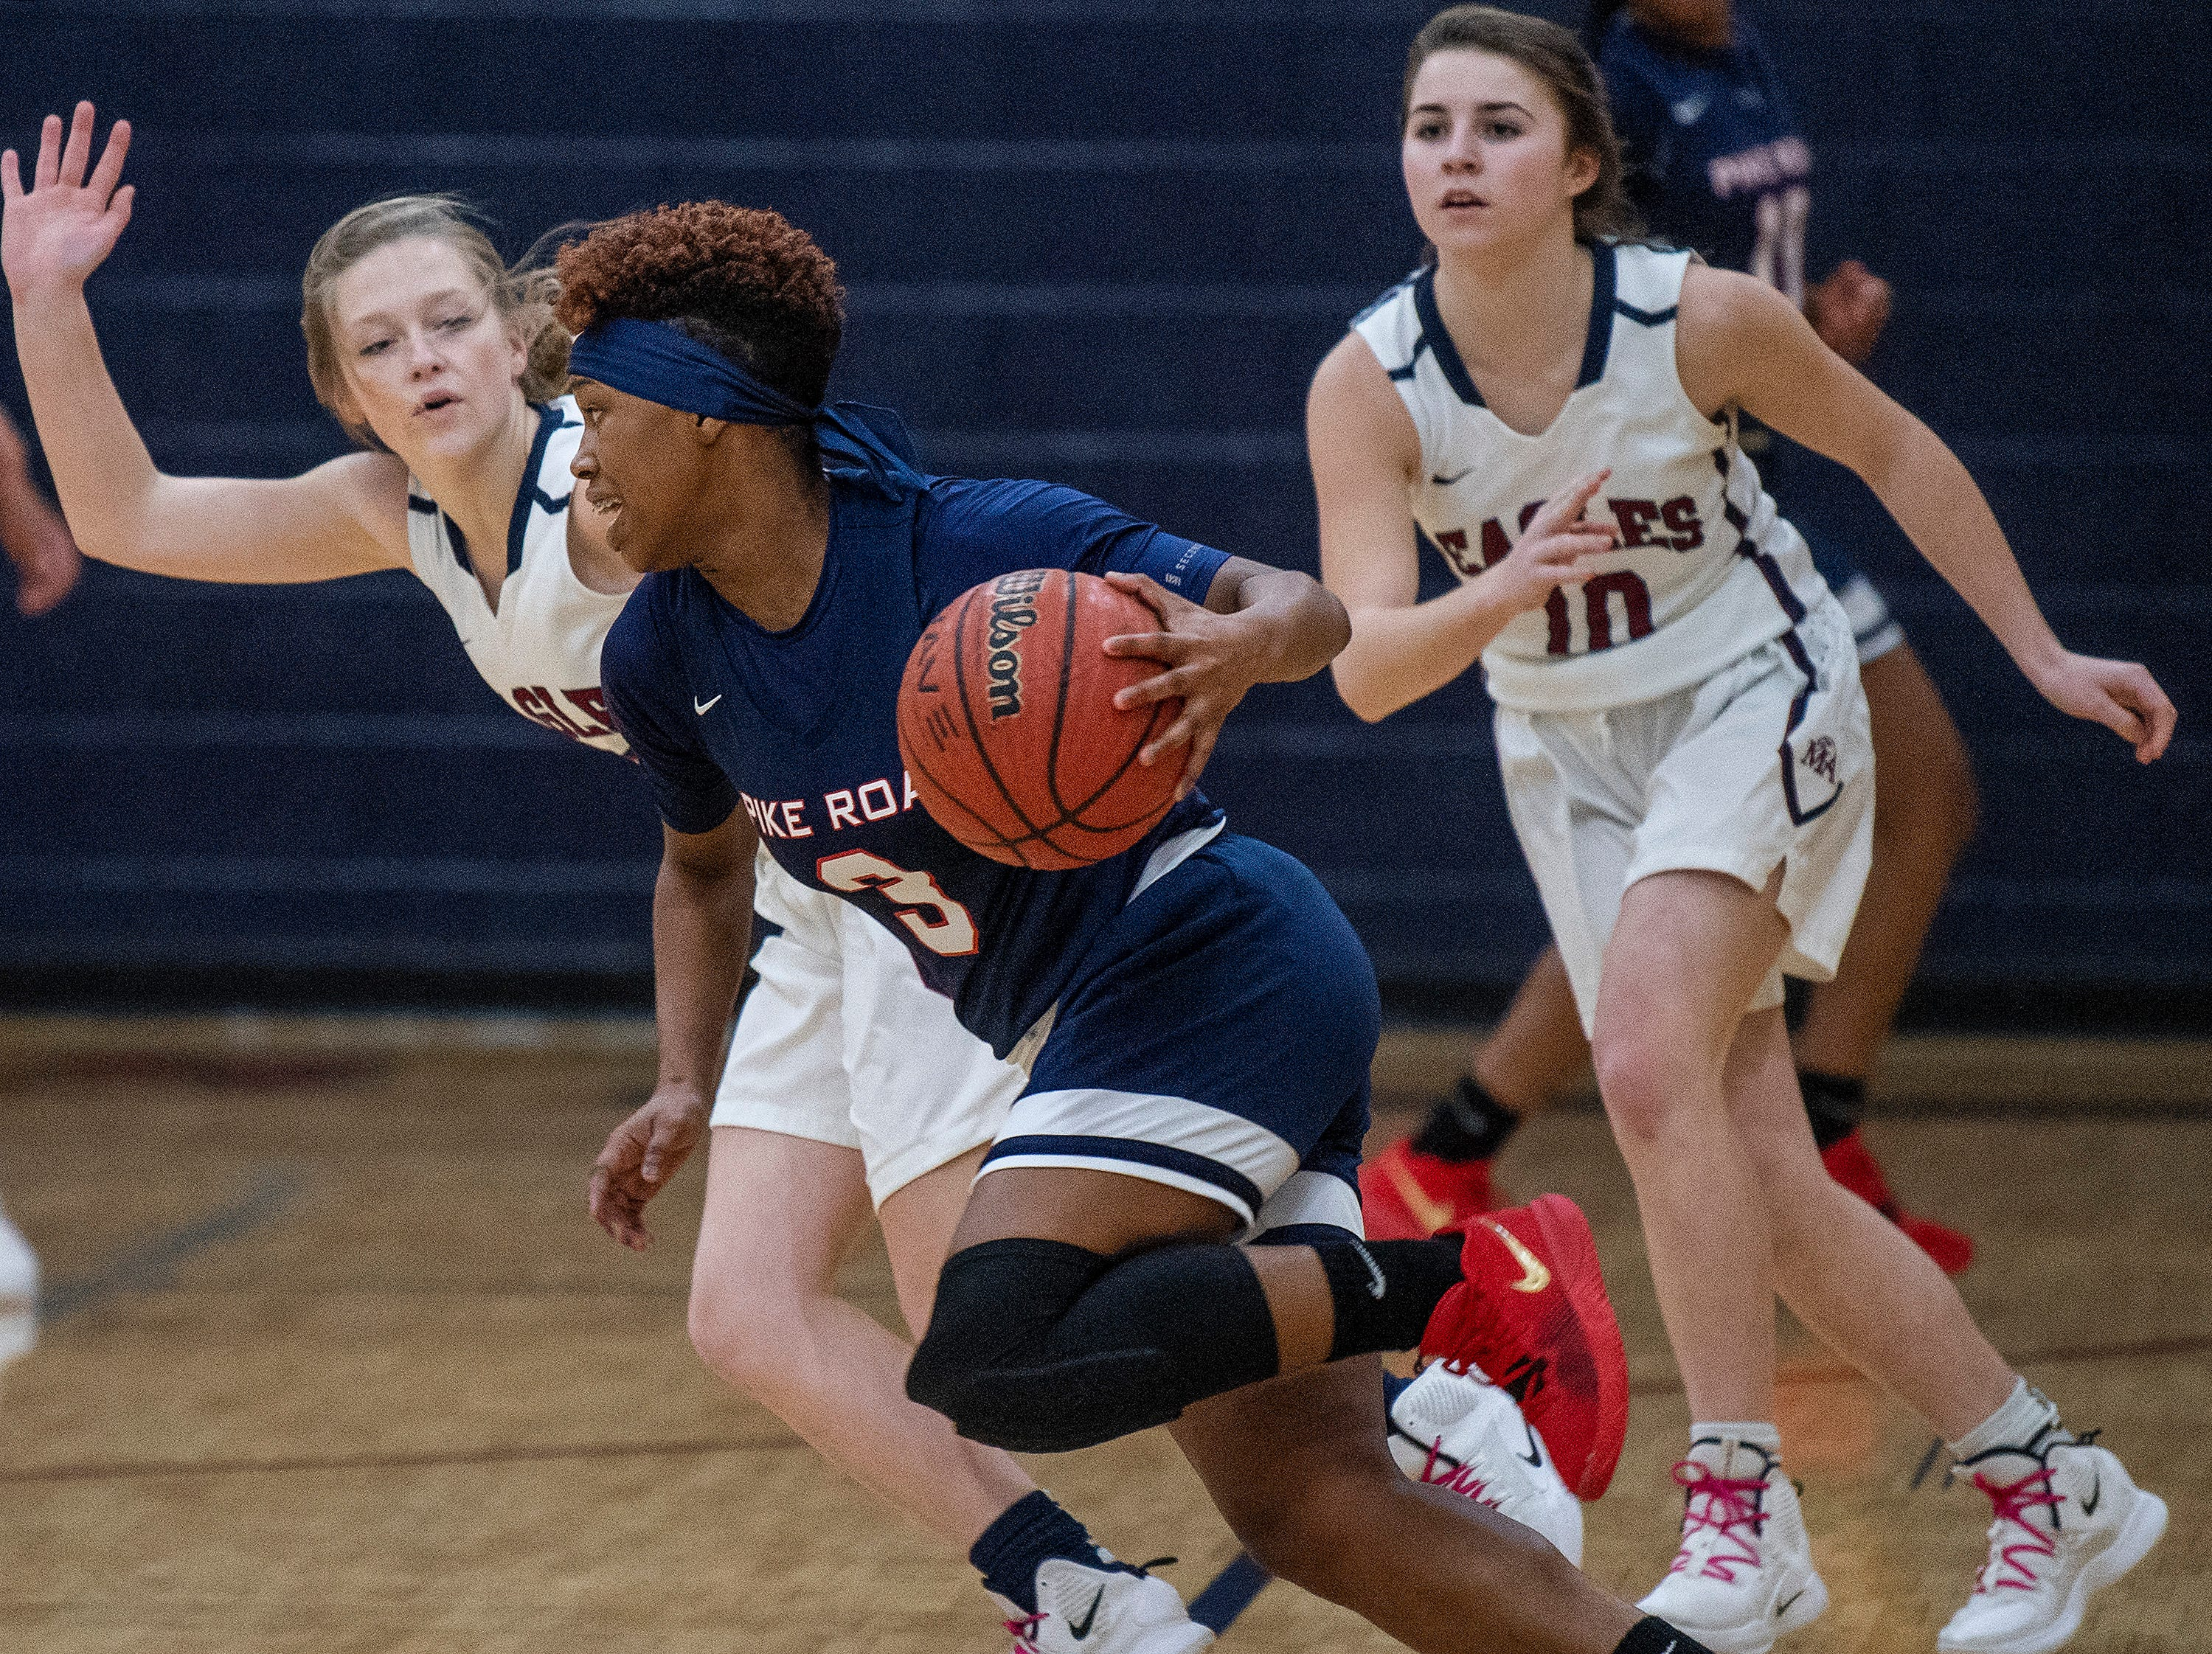 Pike Road's Sheria Clement (3) drives against Montgomery Academy's Julia Williams (2) on the MA campus in Montgomery, Ala., on Friday February 8, 2019.